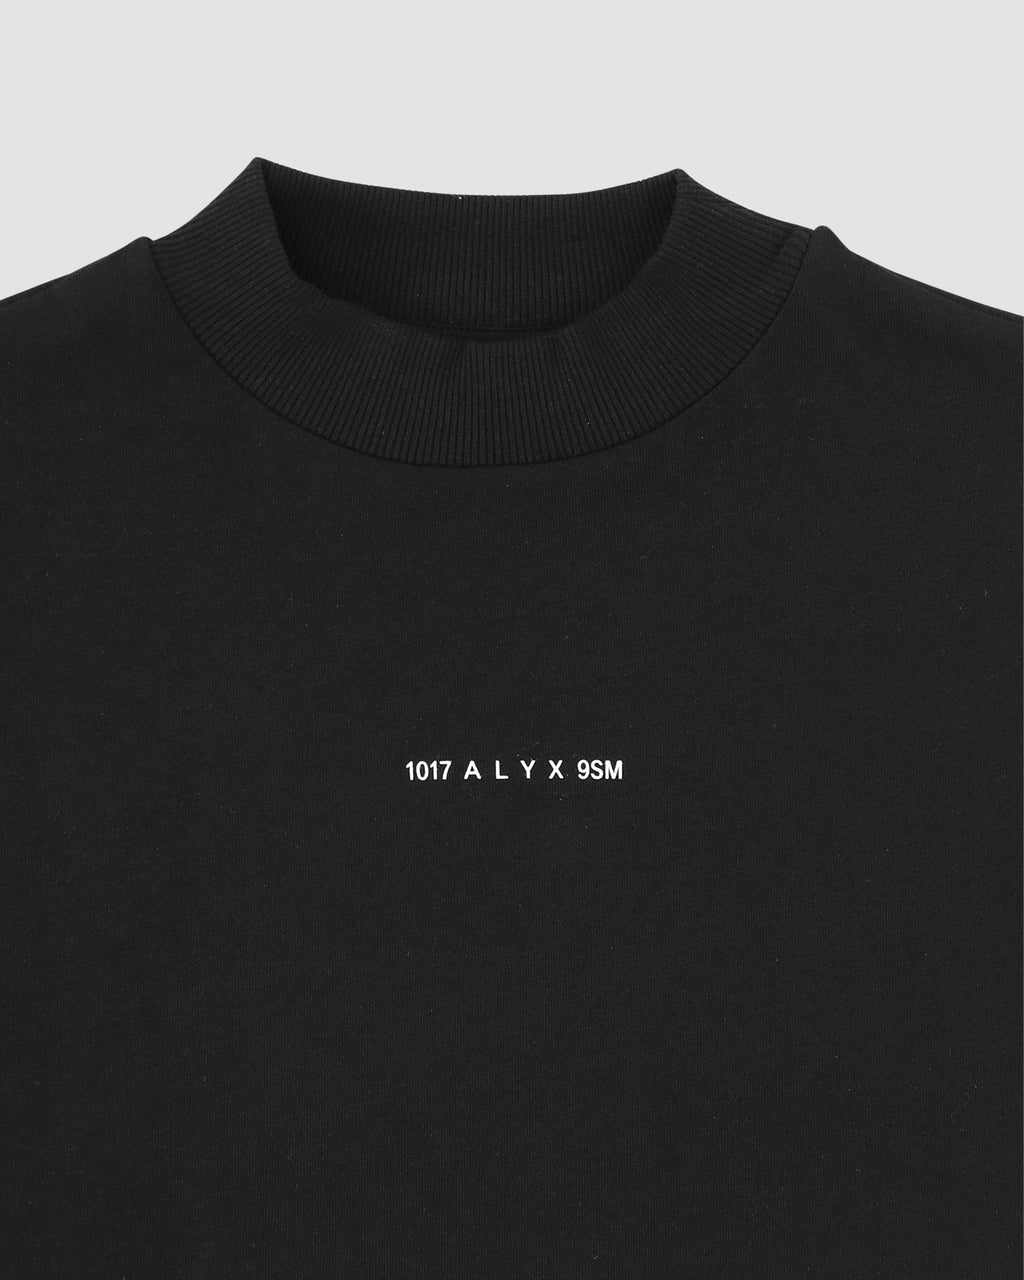 1017 ALYX 9SM | LOGO MOCK NECK TEE | T-Shirt | Black, F19